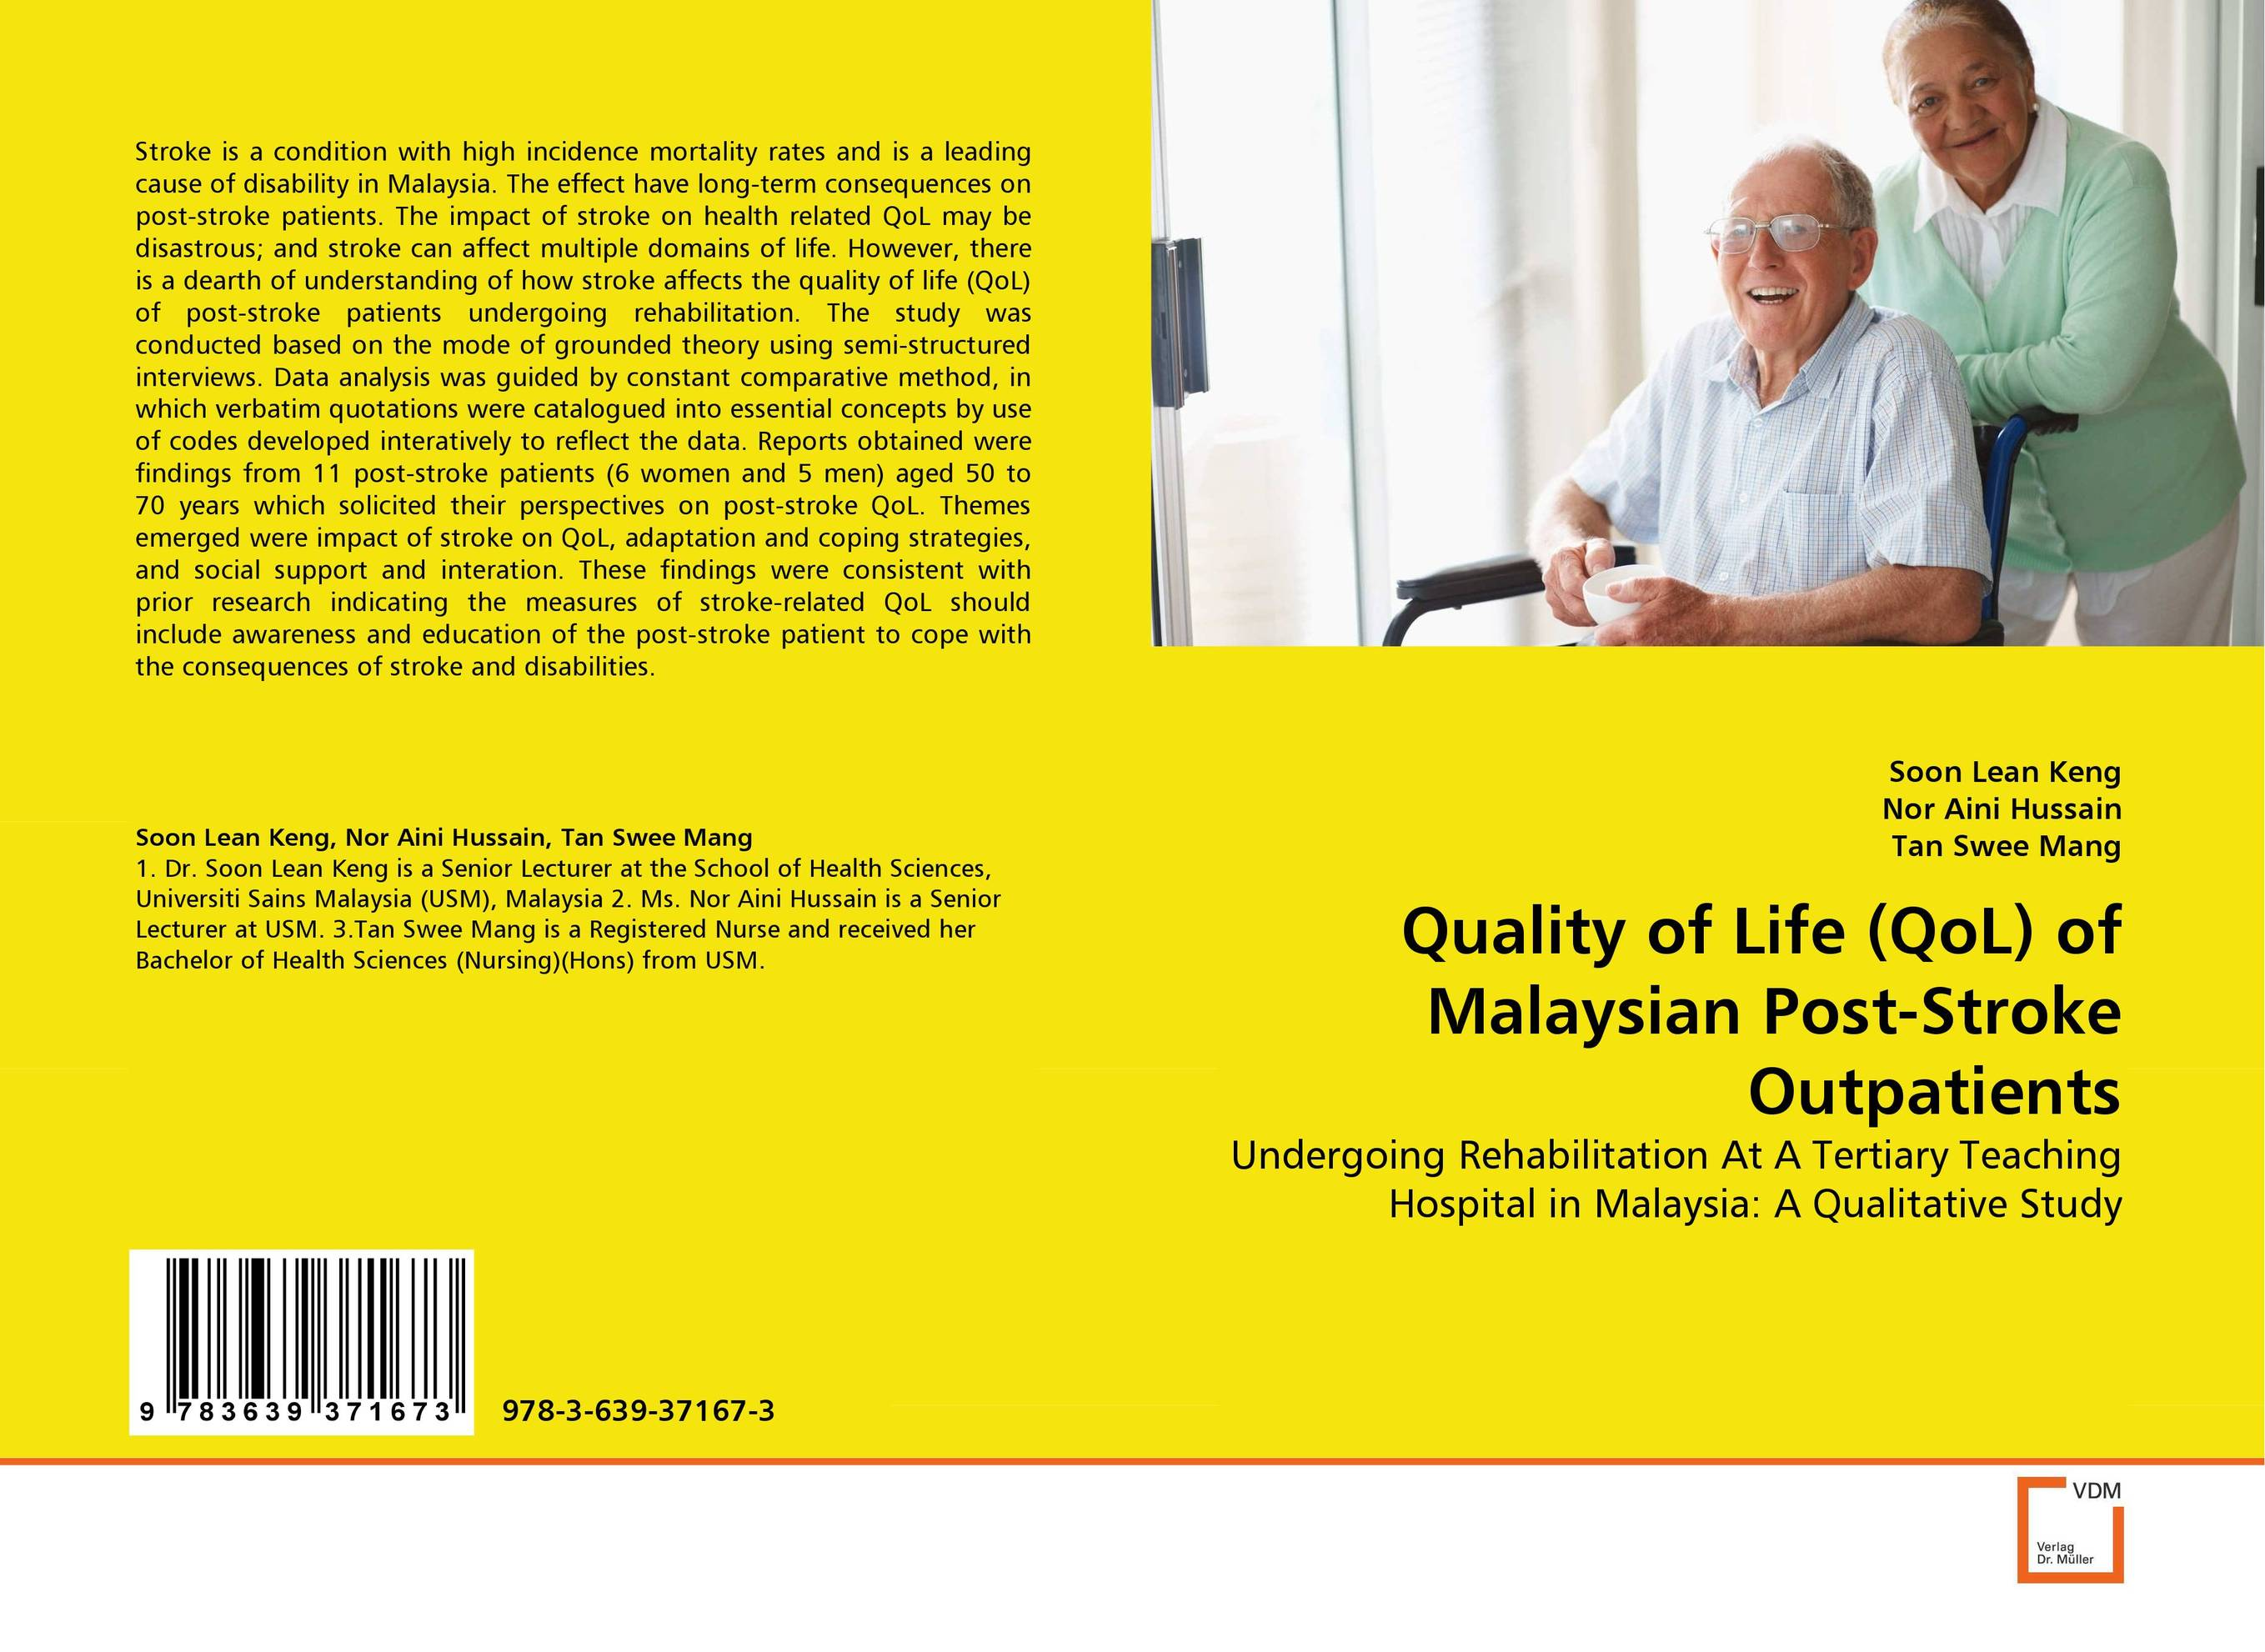 Quality of Life (QoL) of Malaysian Post-Stroke Outpatients pinko брючный комбинезон